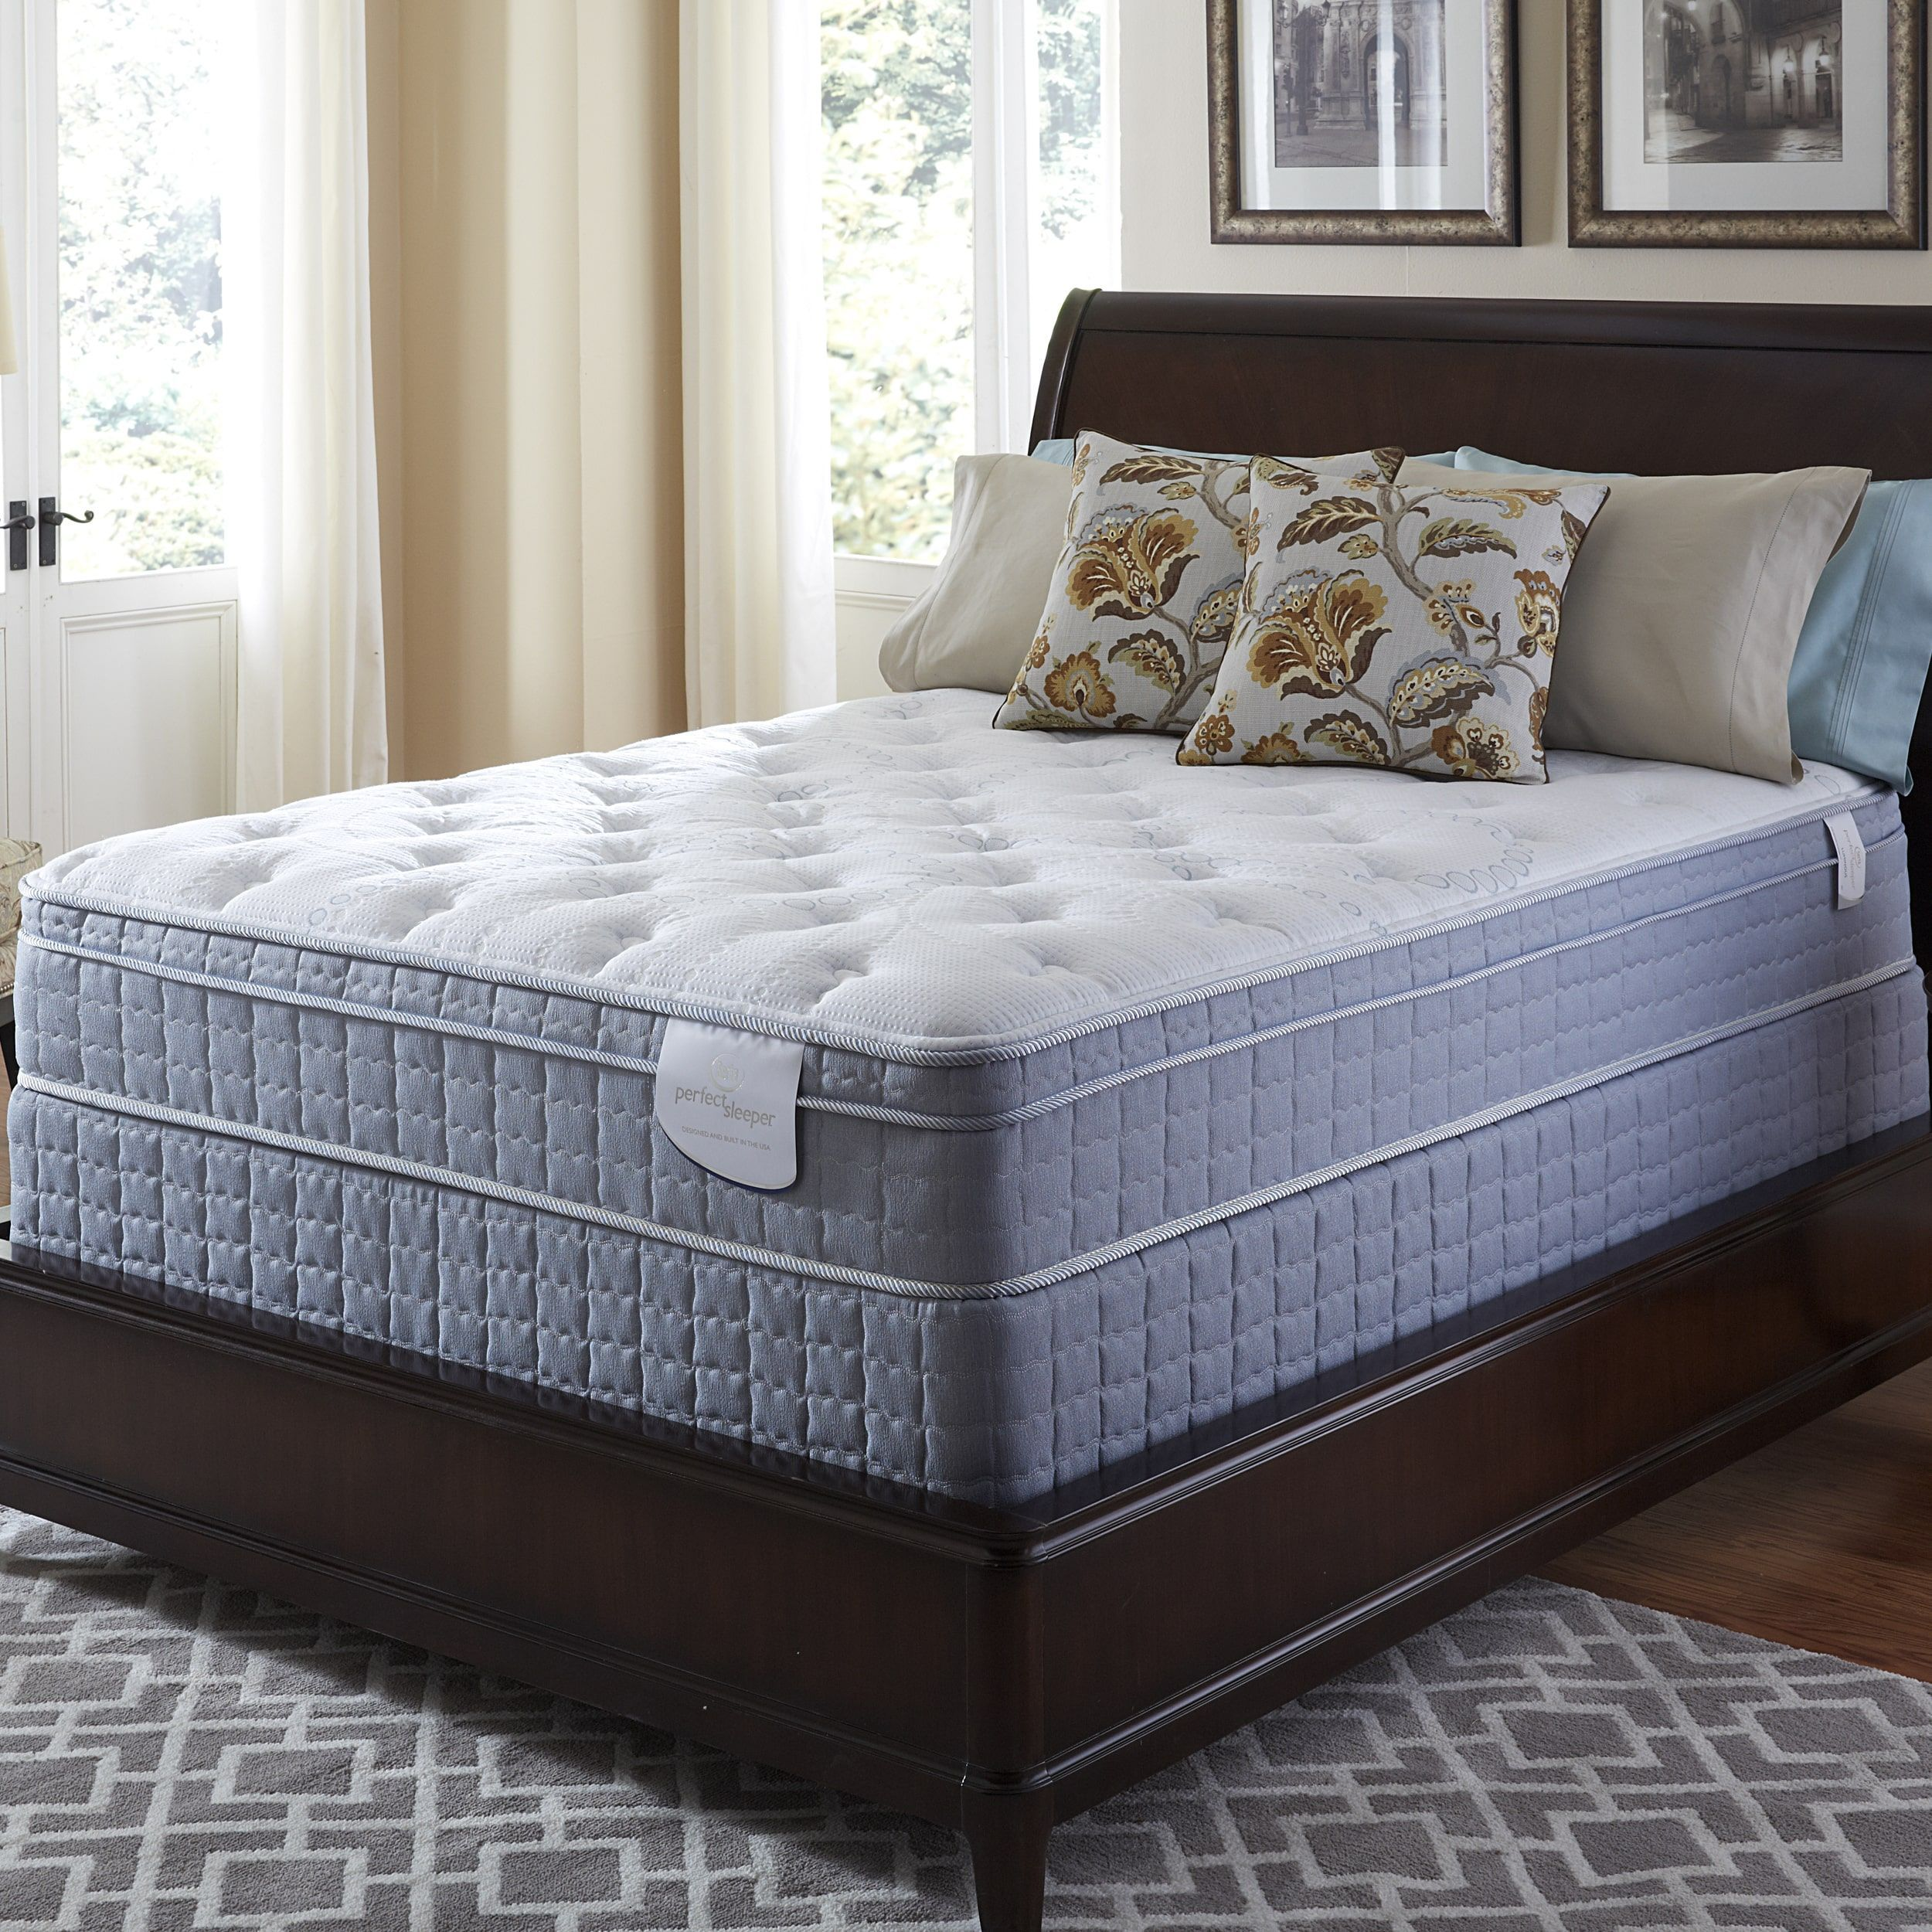 serta memory medhurst perfect number firm luxury queen t products item gel mattress psluxfirm foam sleeper